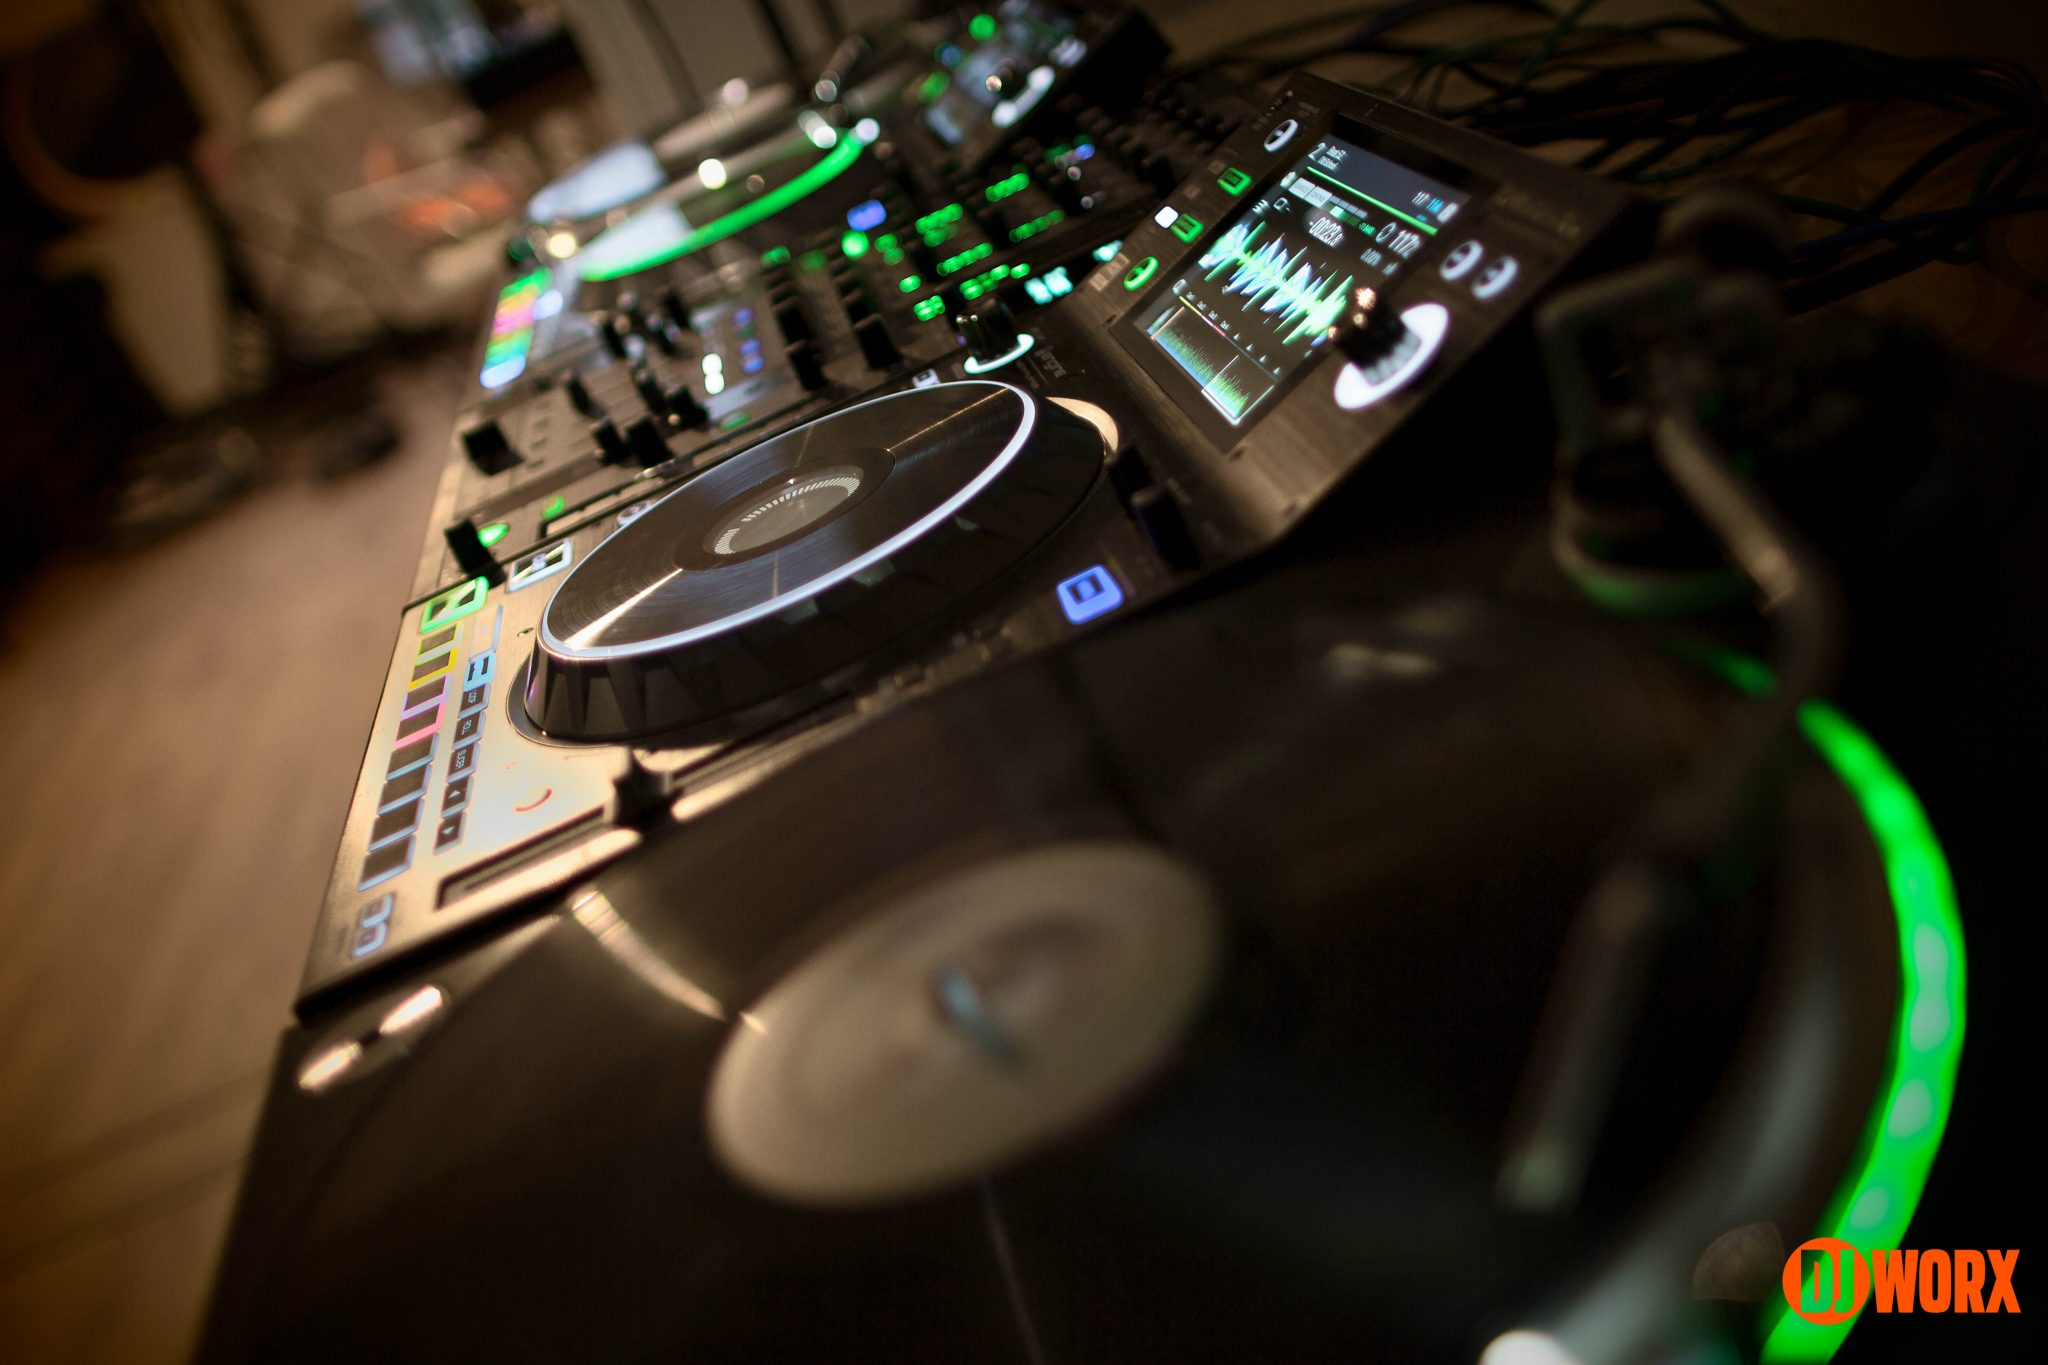 So... will you #changeyourrider to Denon DJ Prime? 8